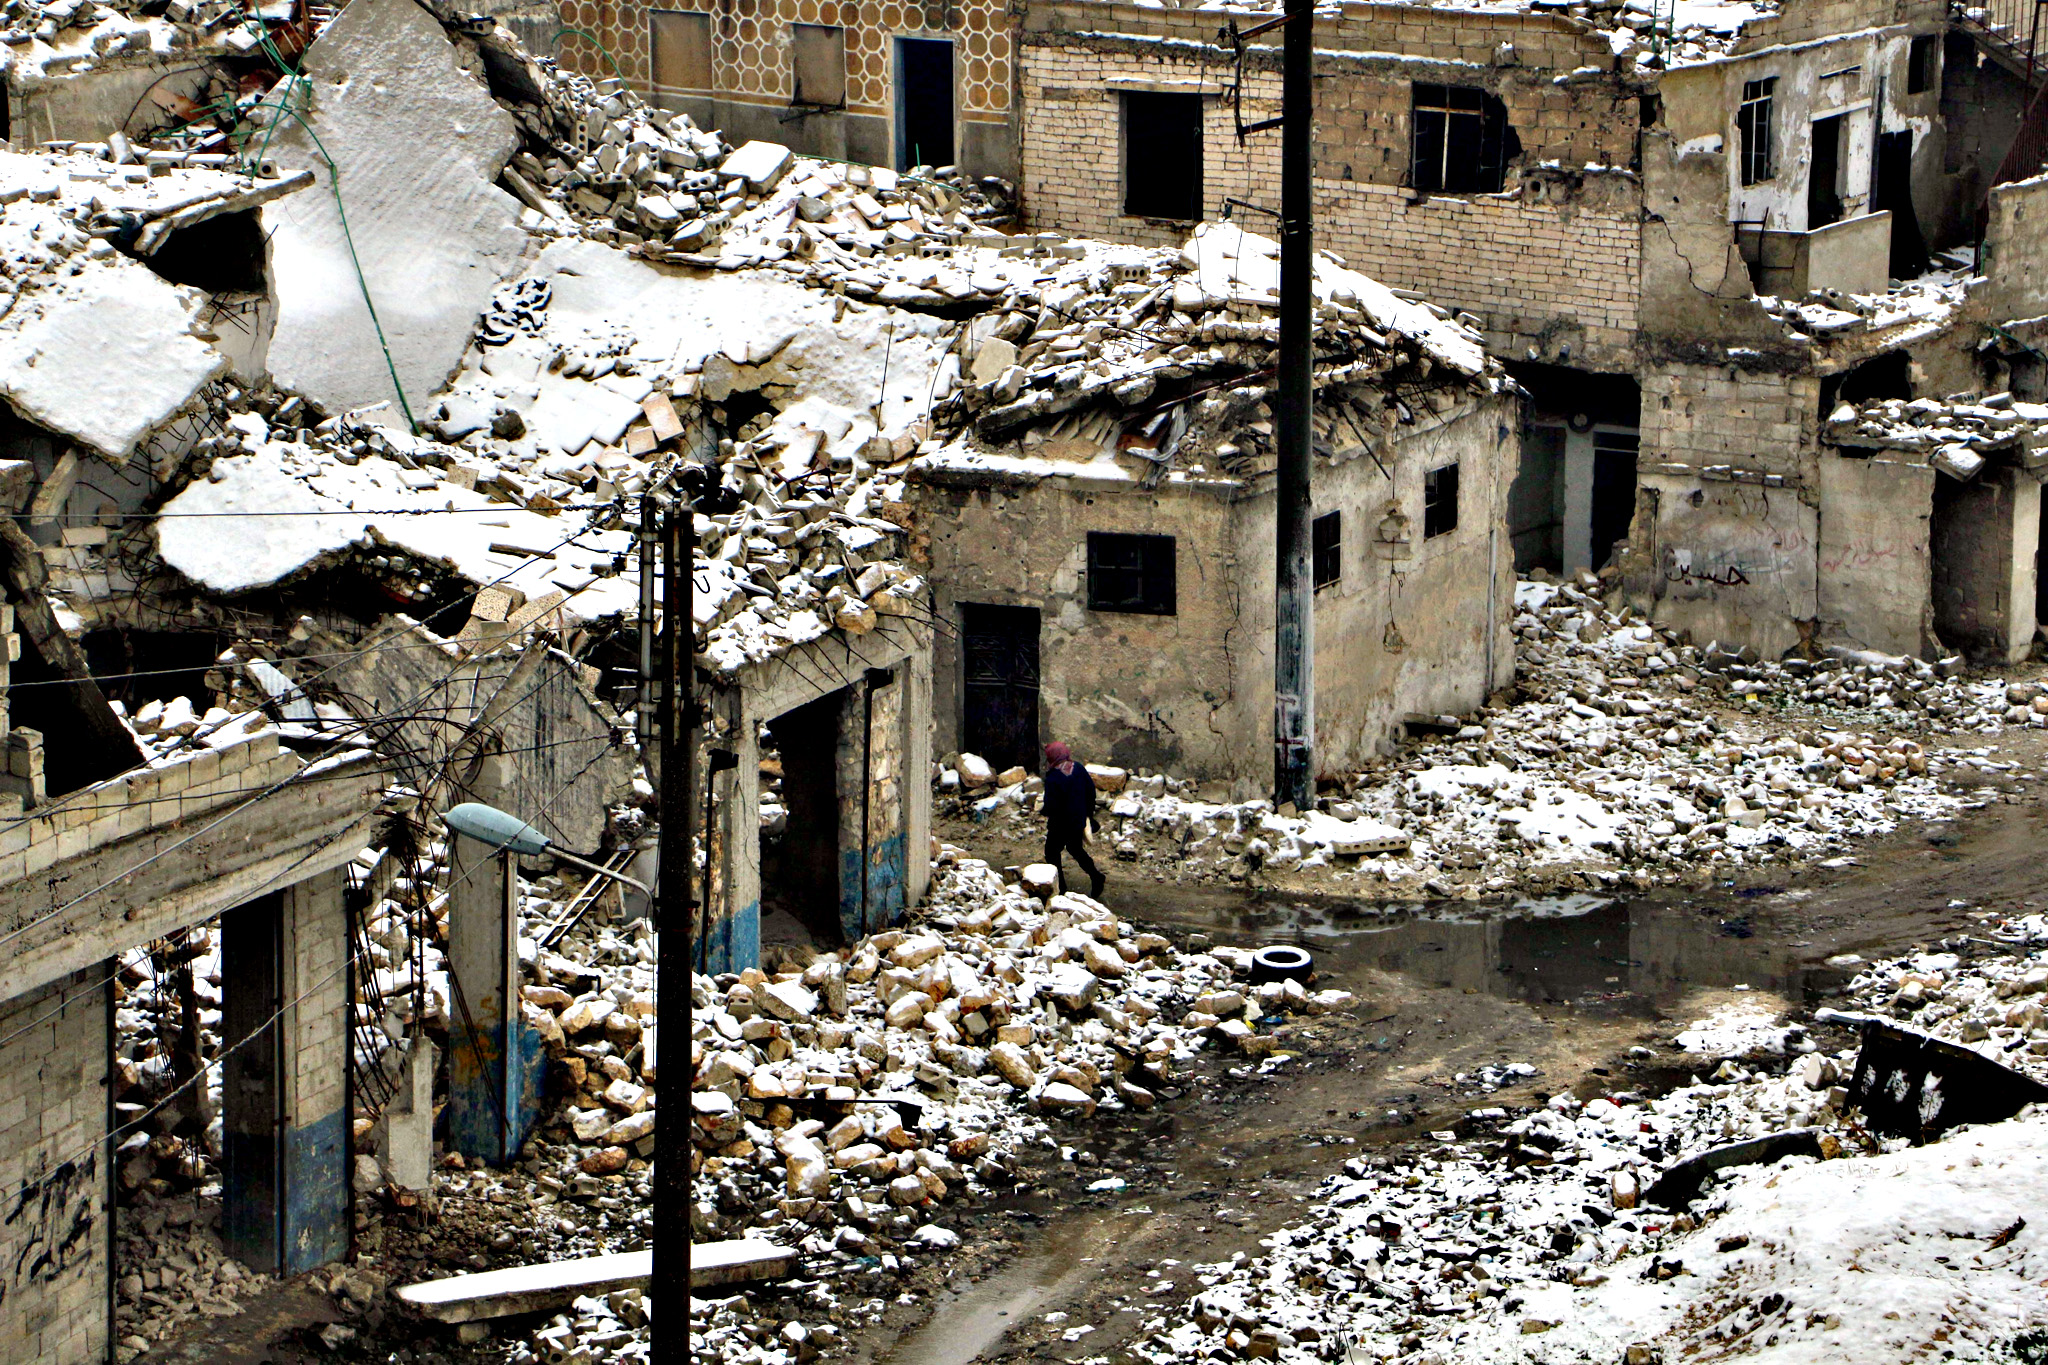 A Syrian man walks past damaged homes following a snow storm in the northern Syrian city of Aleppo on Tuesday. The conflict in Syria has killed more than 250,000 people and forced millions to flee their homes since it broke out in March 2011.